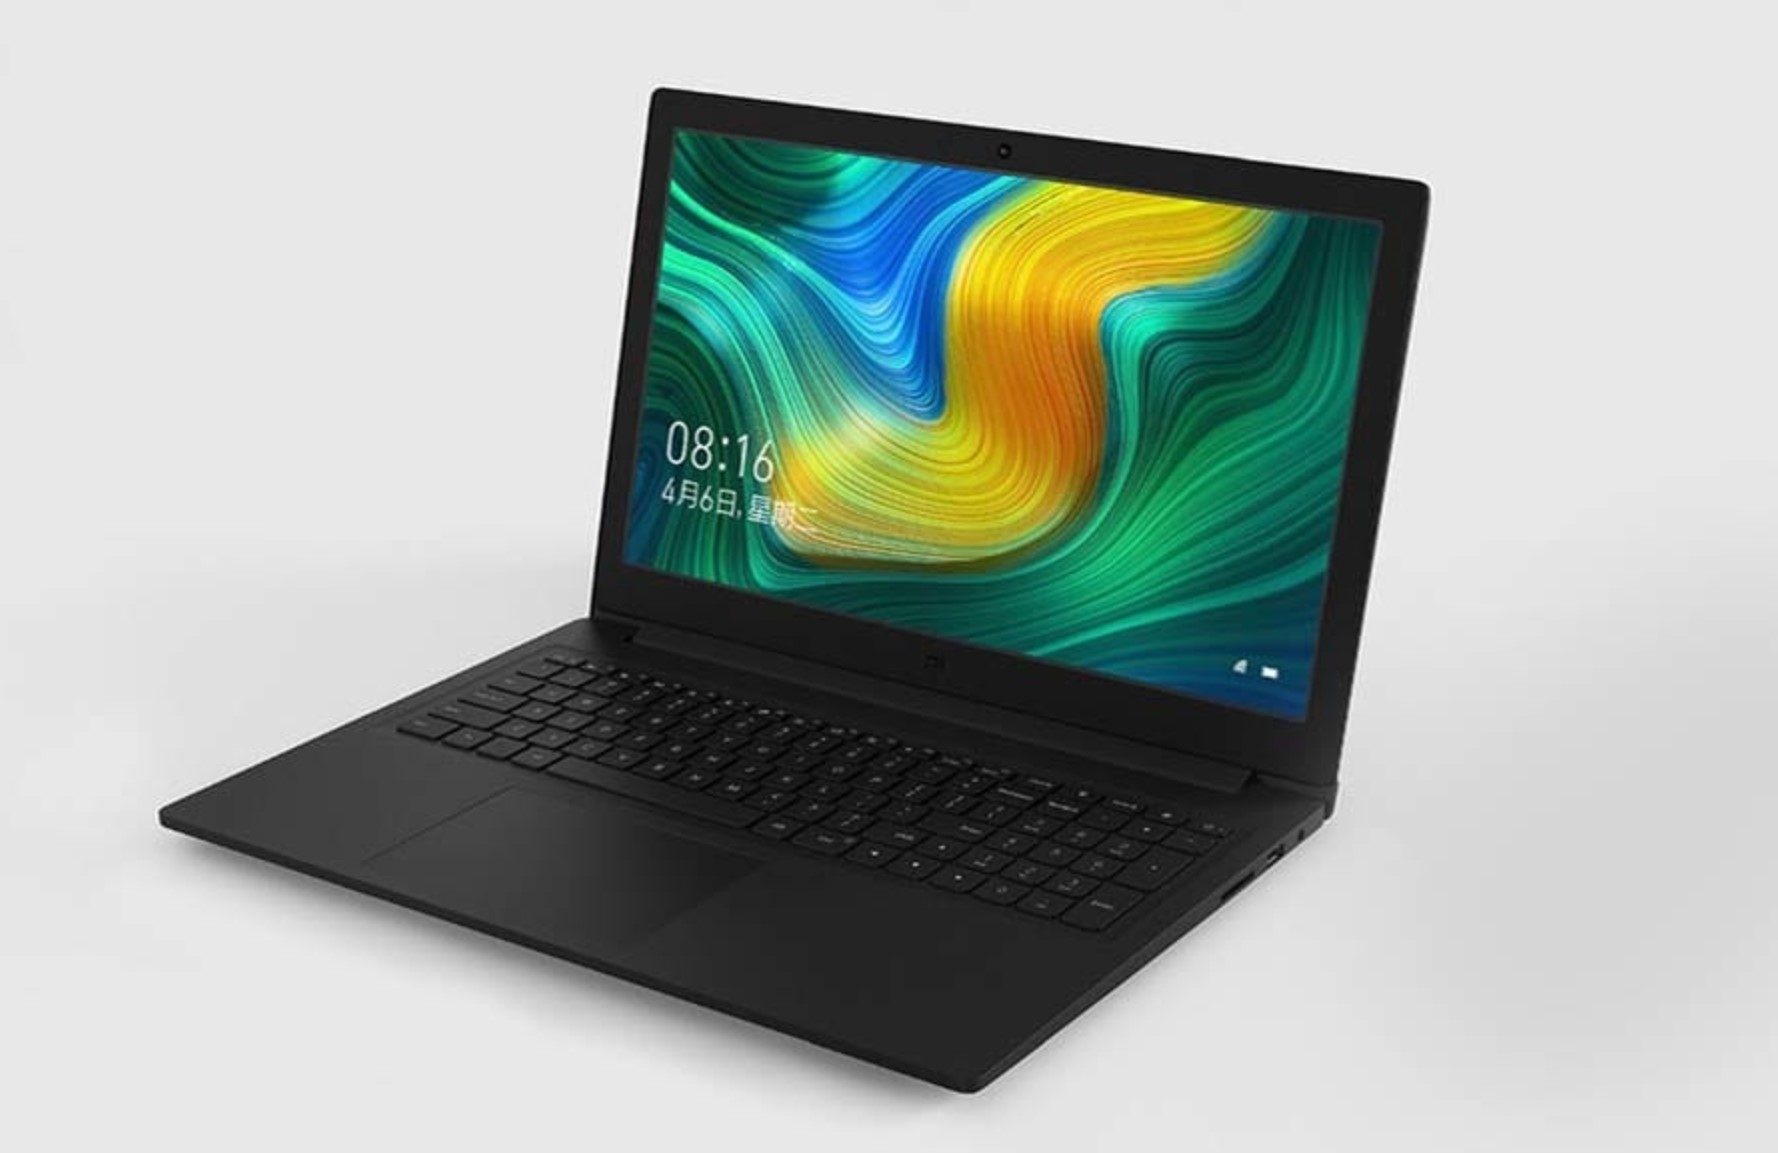 https://javipas.com/wp-content/uploads/2018/11/xiaomi-notebook-ruby.jpg